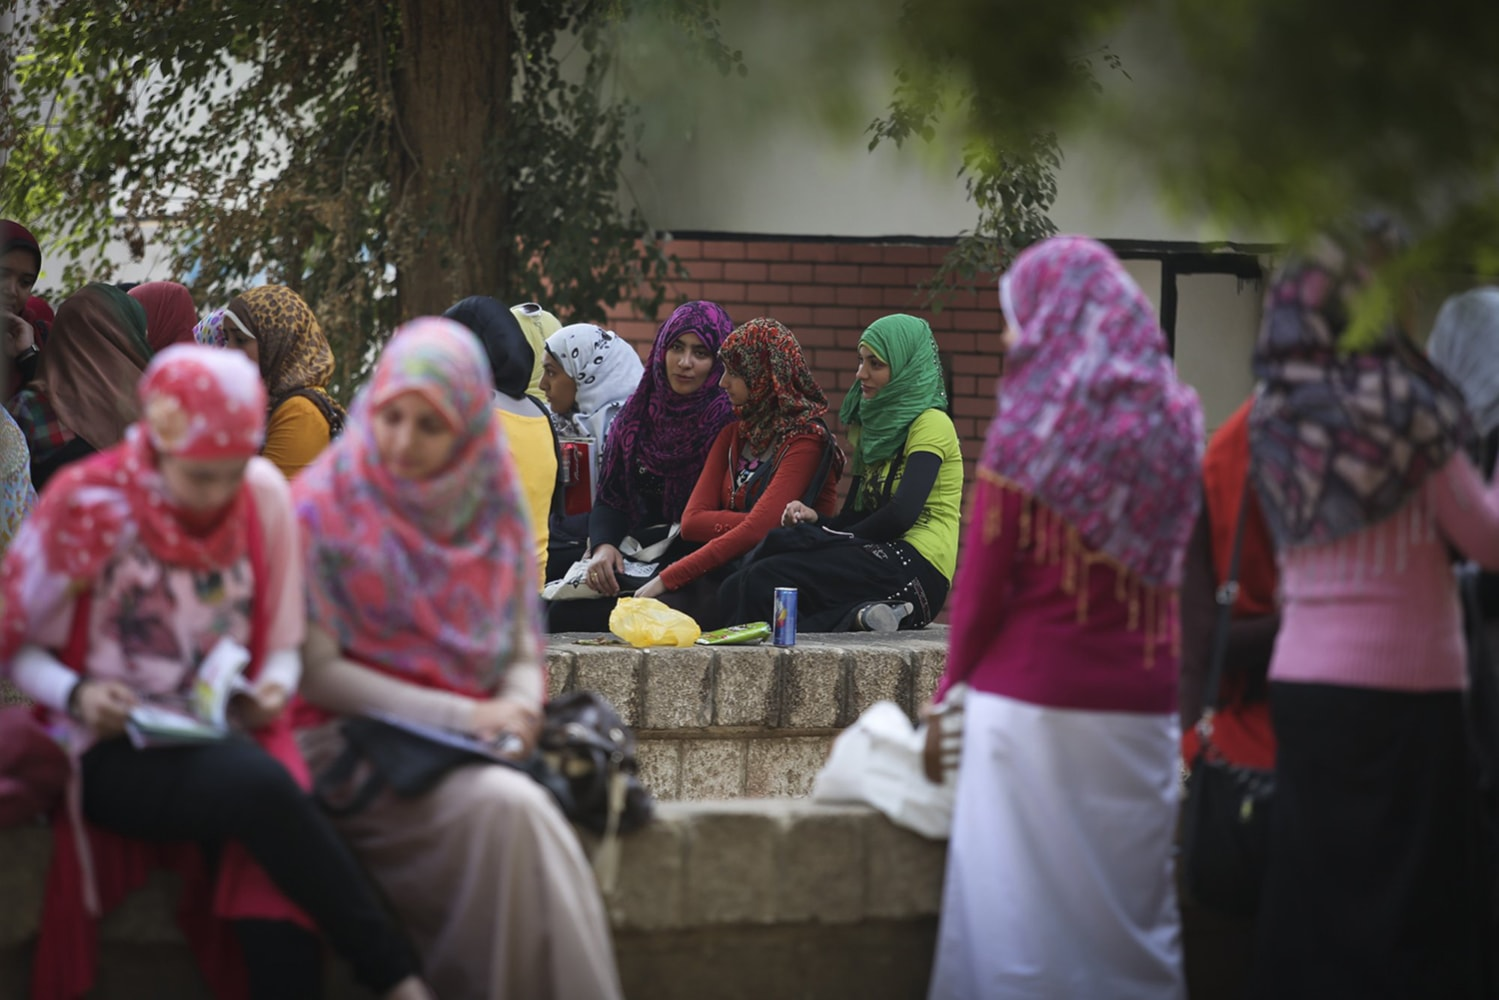 Egypts marriage crisis: Sons and daughters too broke to